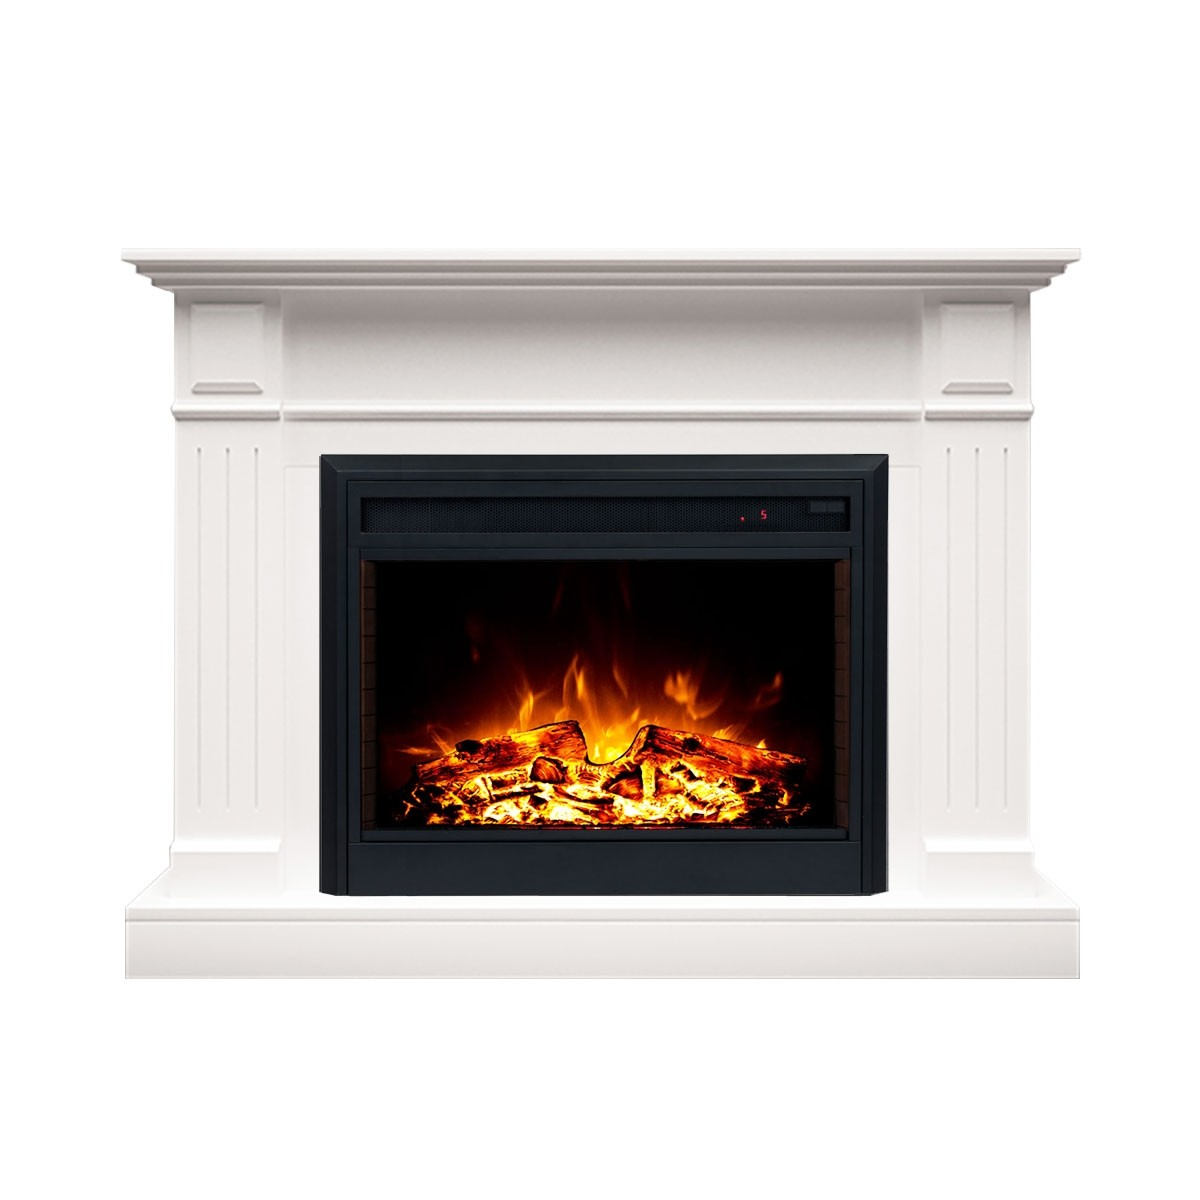 """Berwick 2000W Electric Fireplace Heater Mantel Suite with 30"""" Moonlight Insert"""